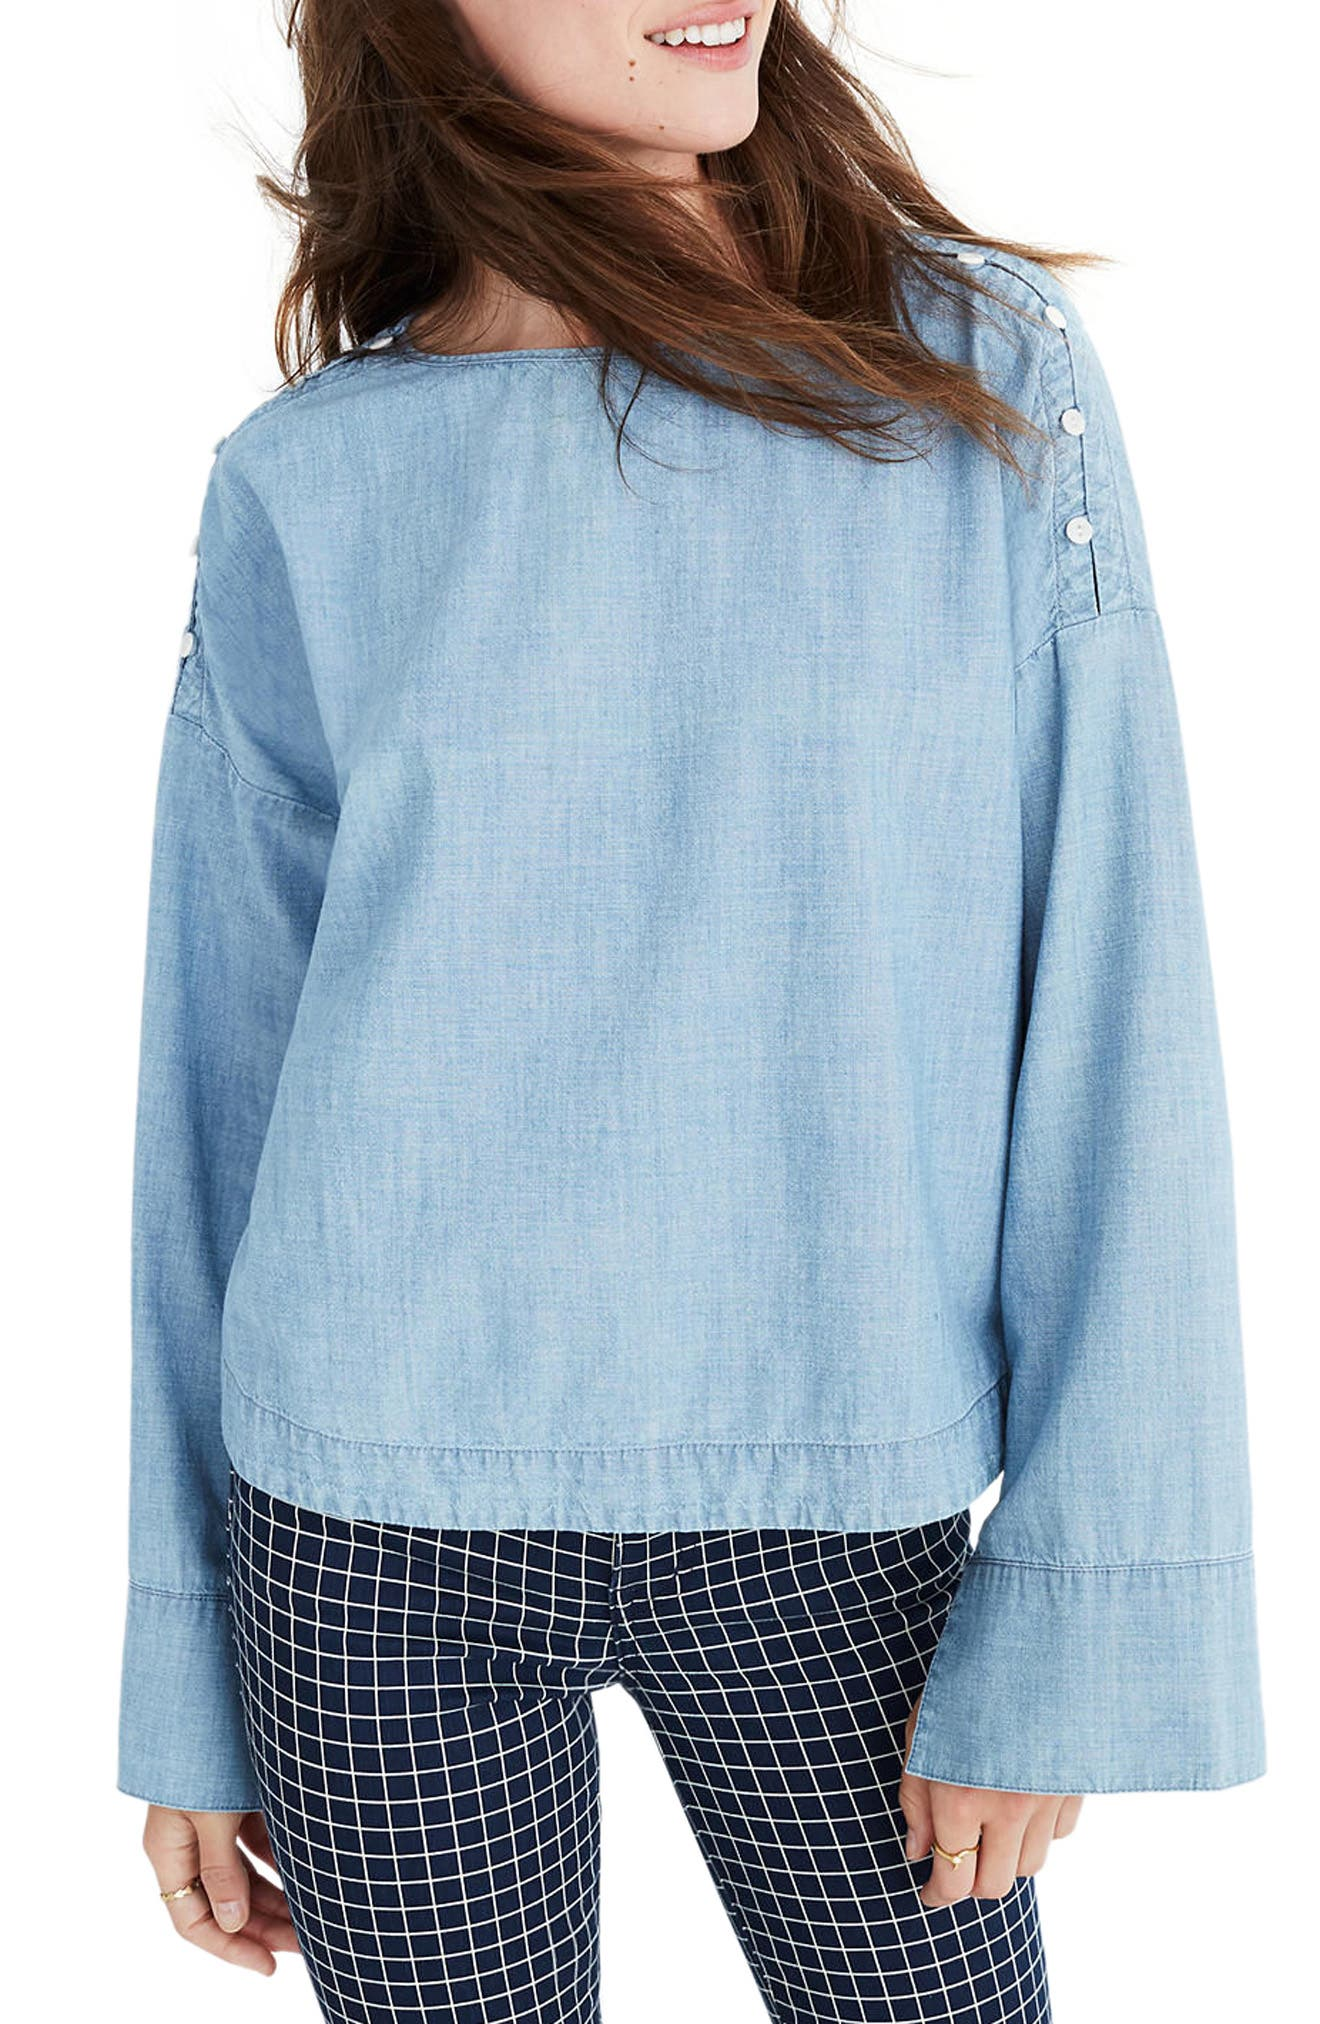 Alternate Image 1 Selected - Madewell Convertible Shoulder Chambray Top